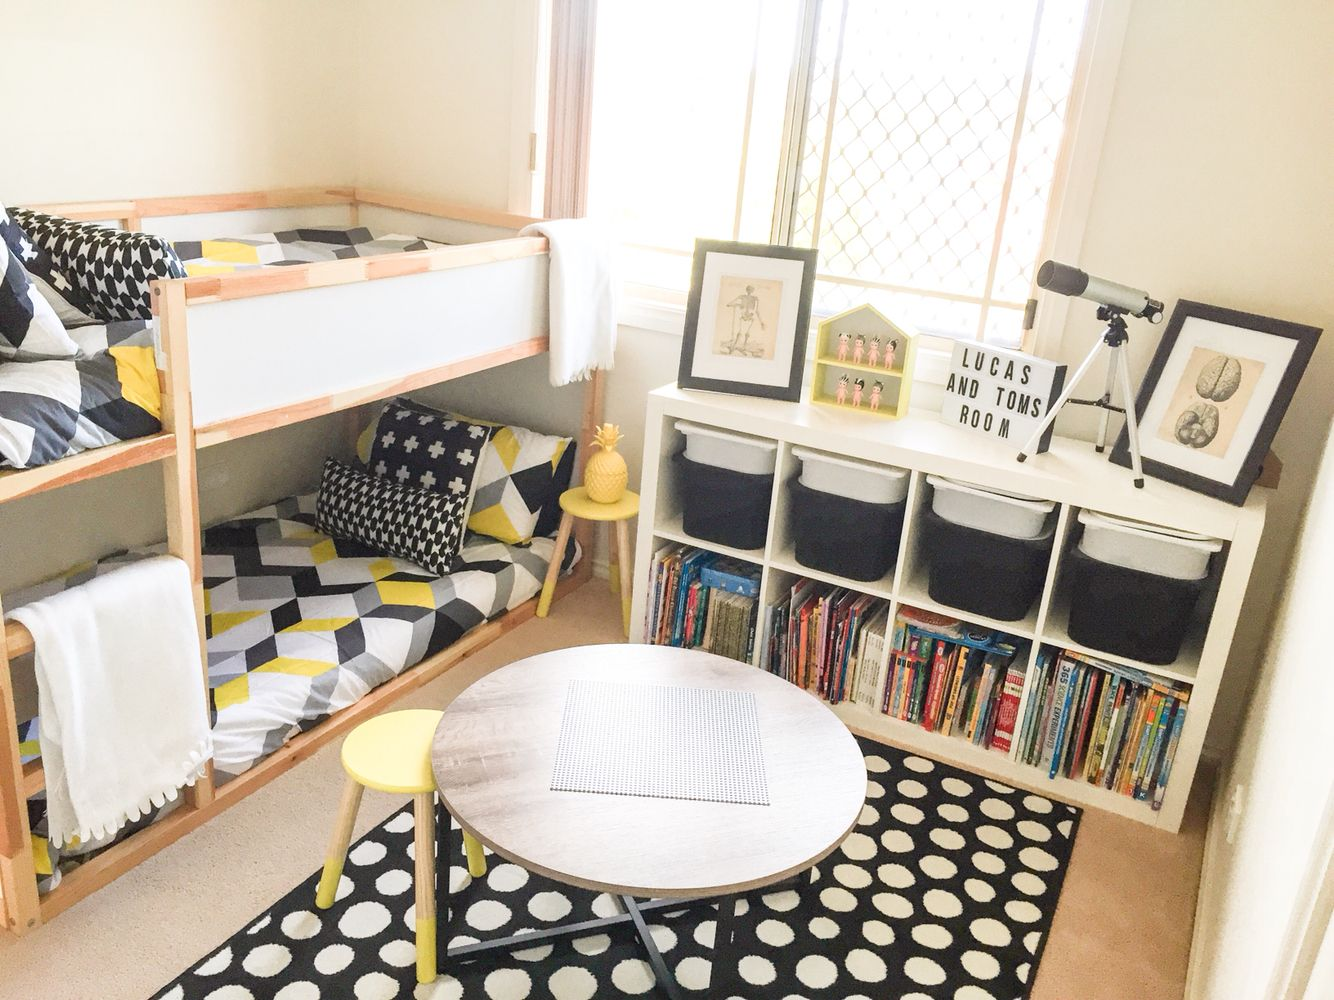 Shared boys geometrical bedroom combination of ikea and Small room storage ideas ikea